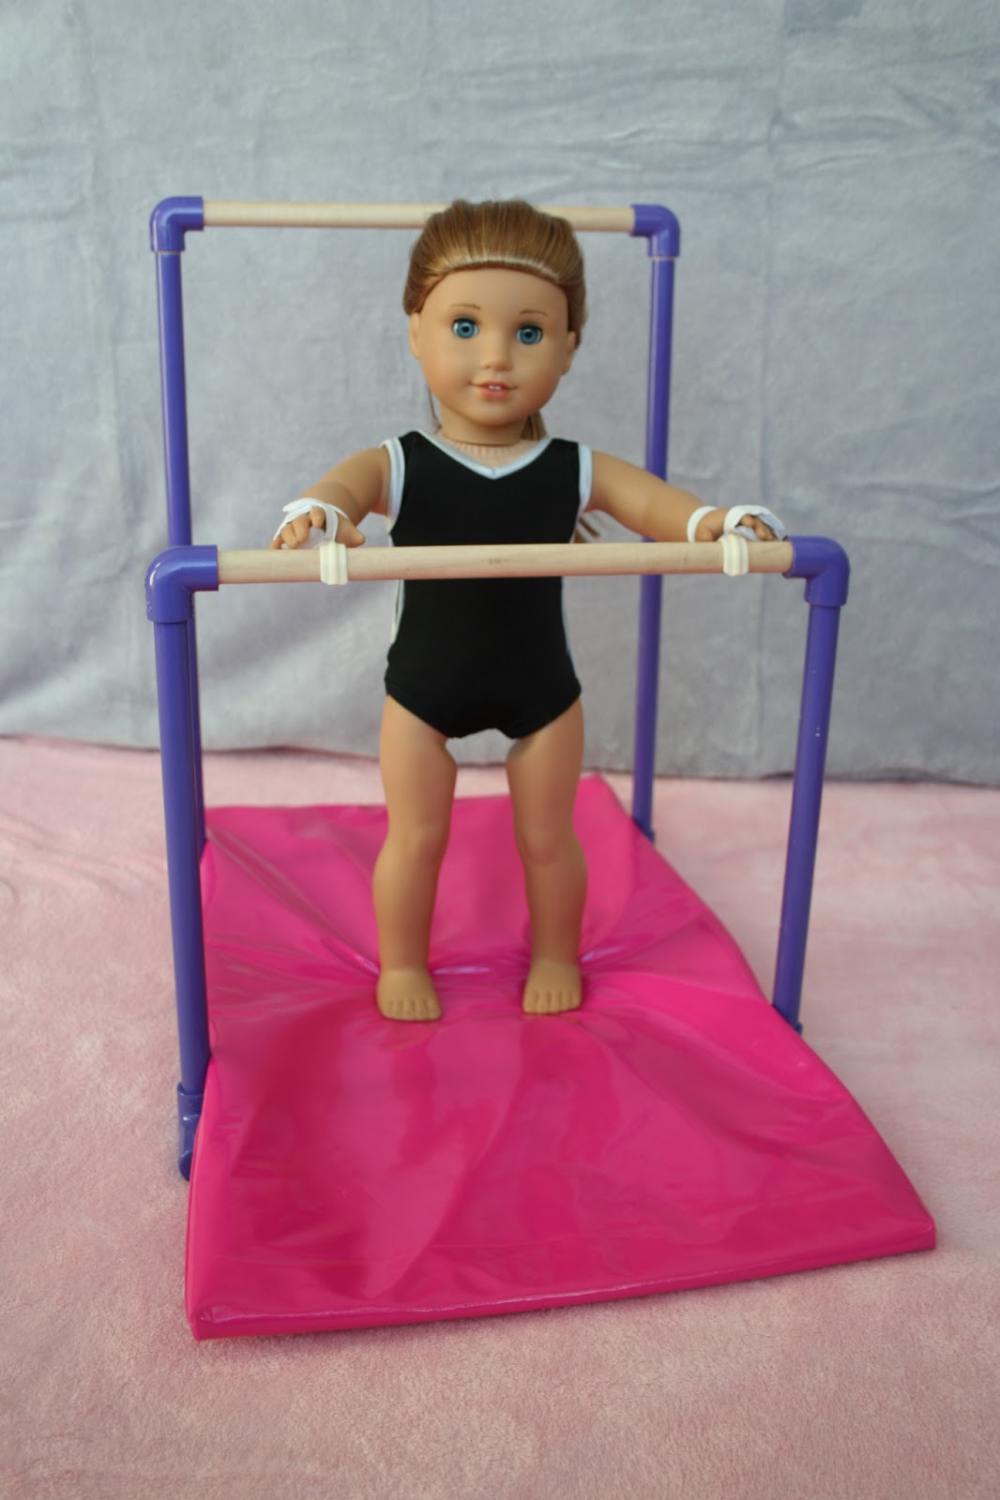 Uneven Bars for American Girl doll